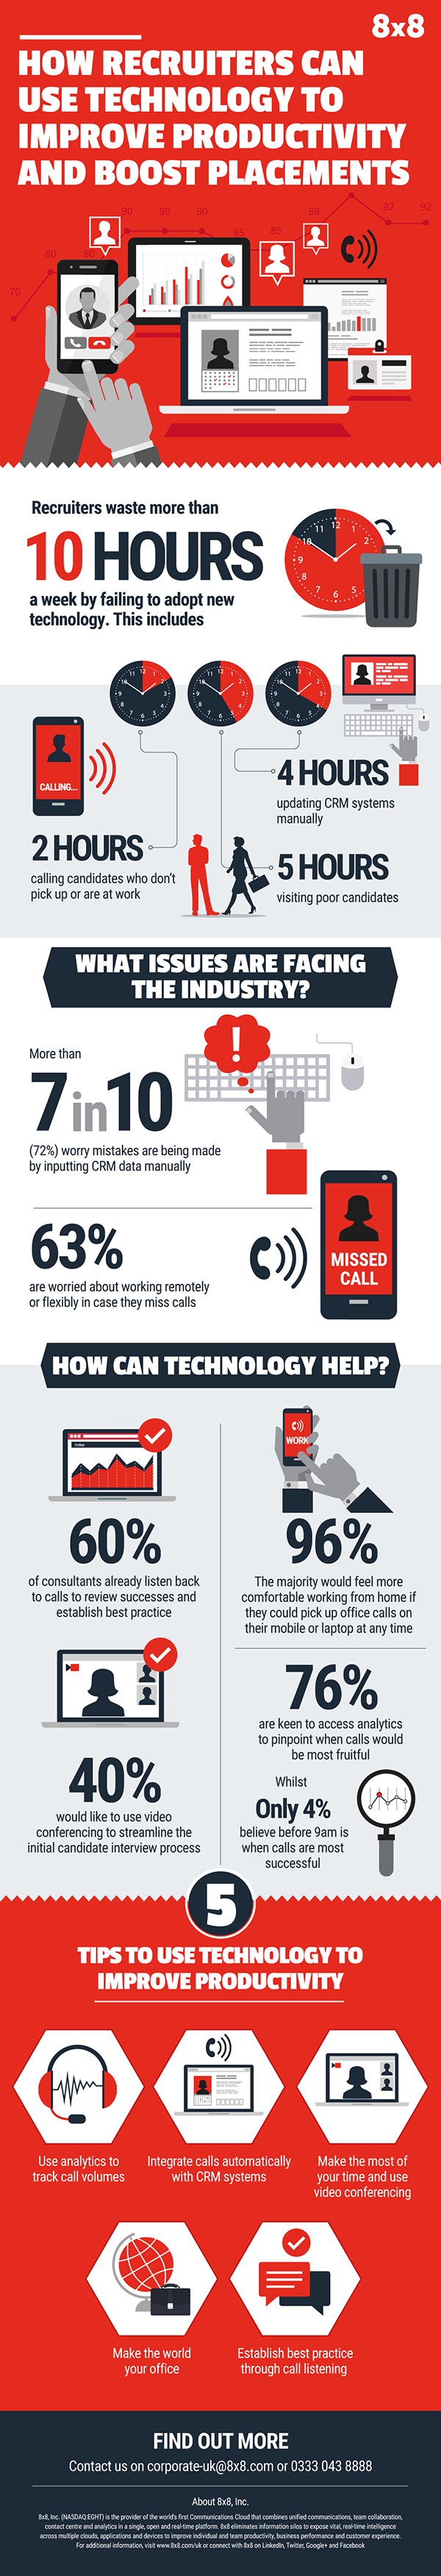 8x8-Infographic-How-recruiters-can-use-technology-to-improve-productivity-and-boost-placements-FINAL-v3.png